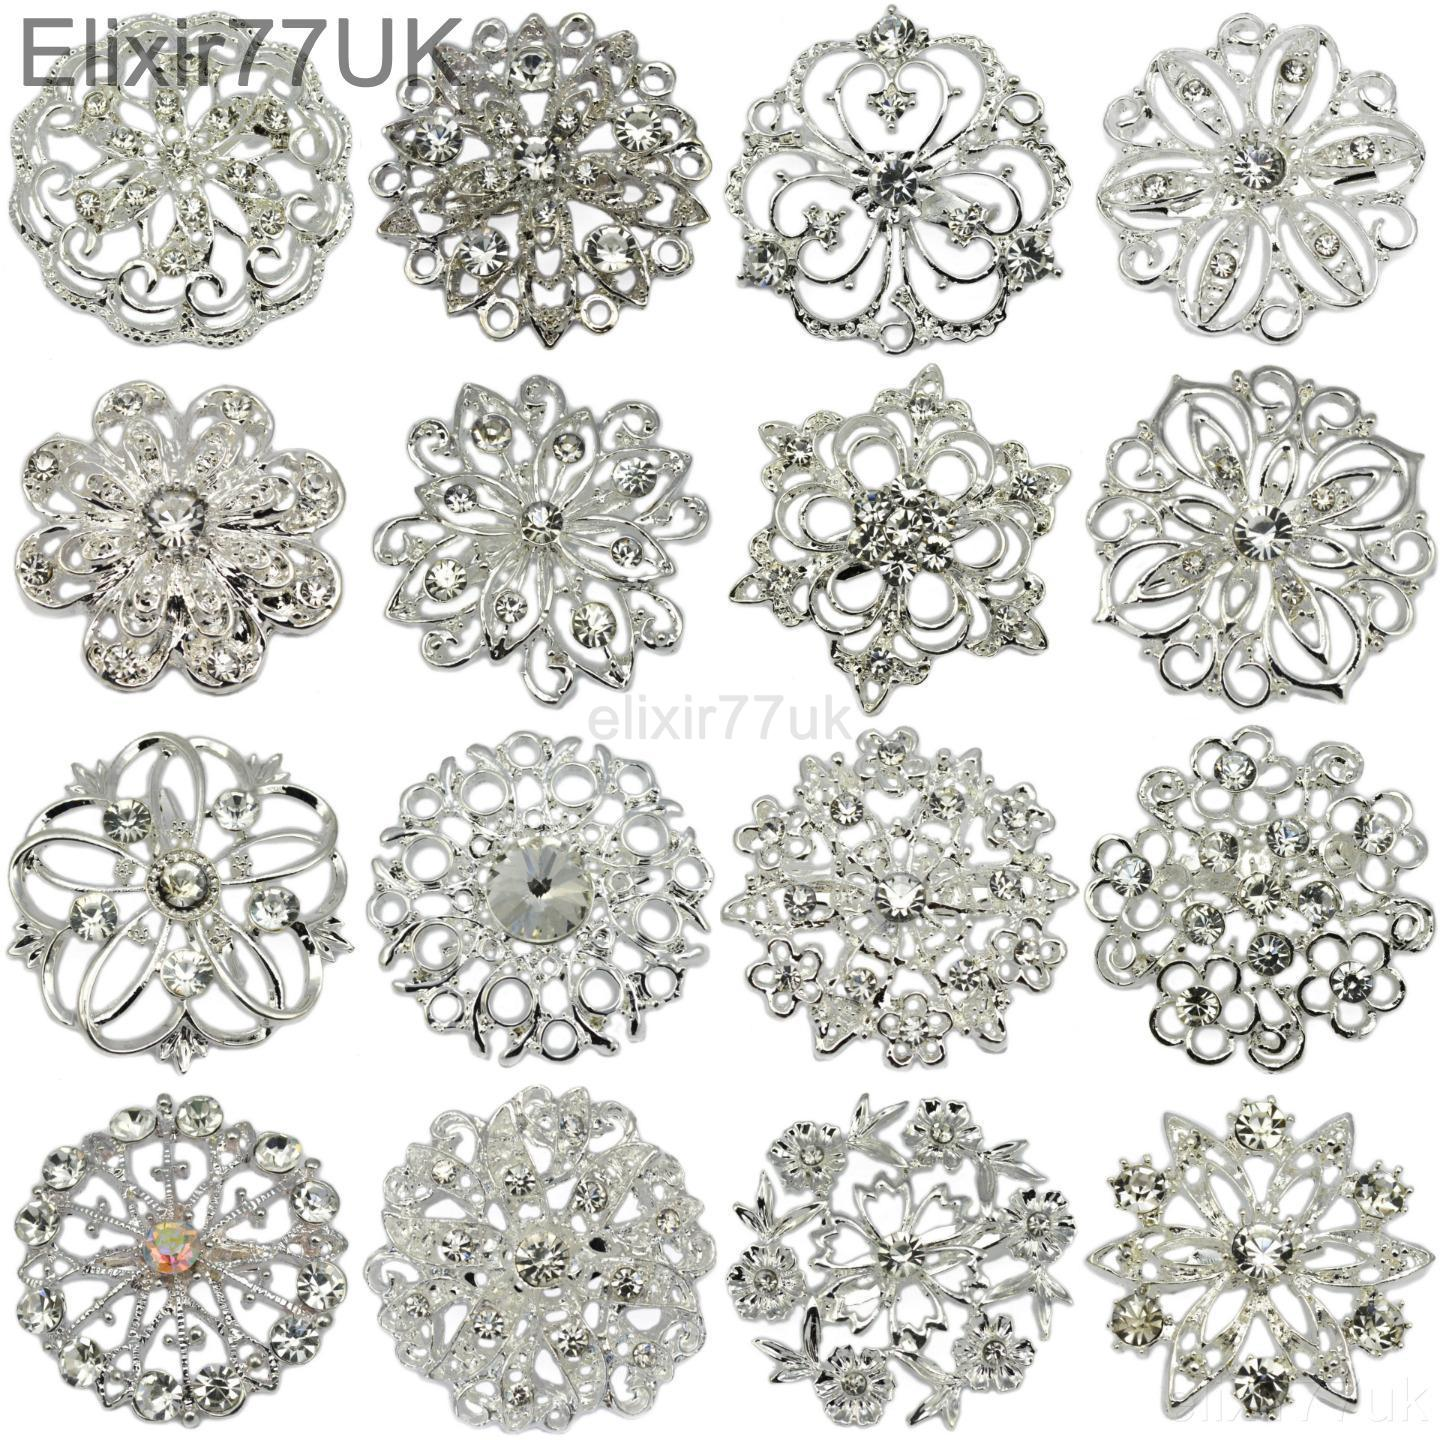 5-100 SILVER CRYSTAL BROOCH JOBLOT BRIDAL WEDDING BOUQUET WHOLESALE LOT DIY UK